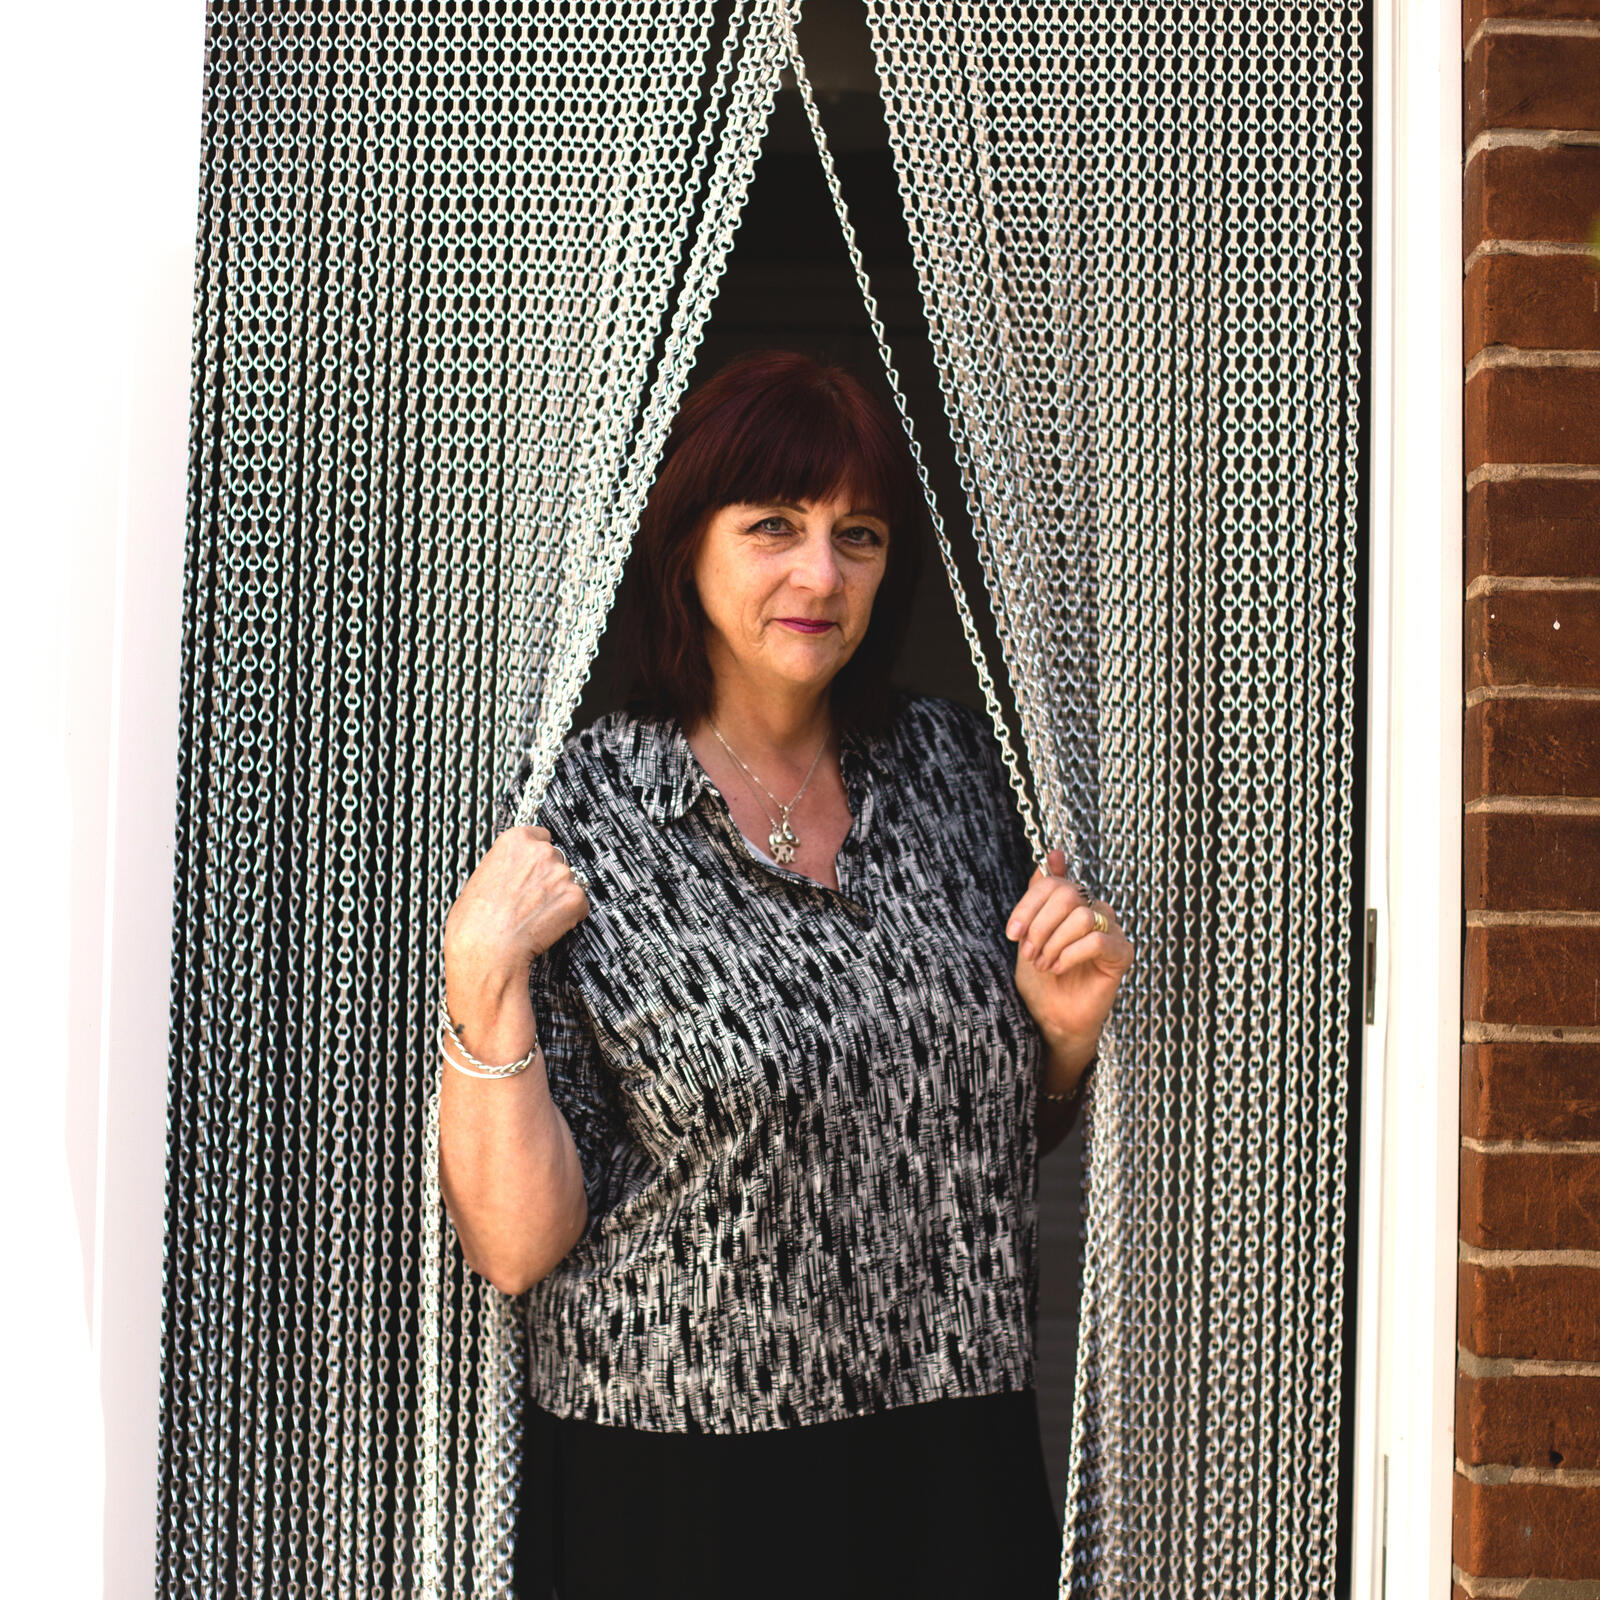 Cosey Fanni Tutti showed us around her home, an old school